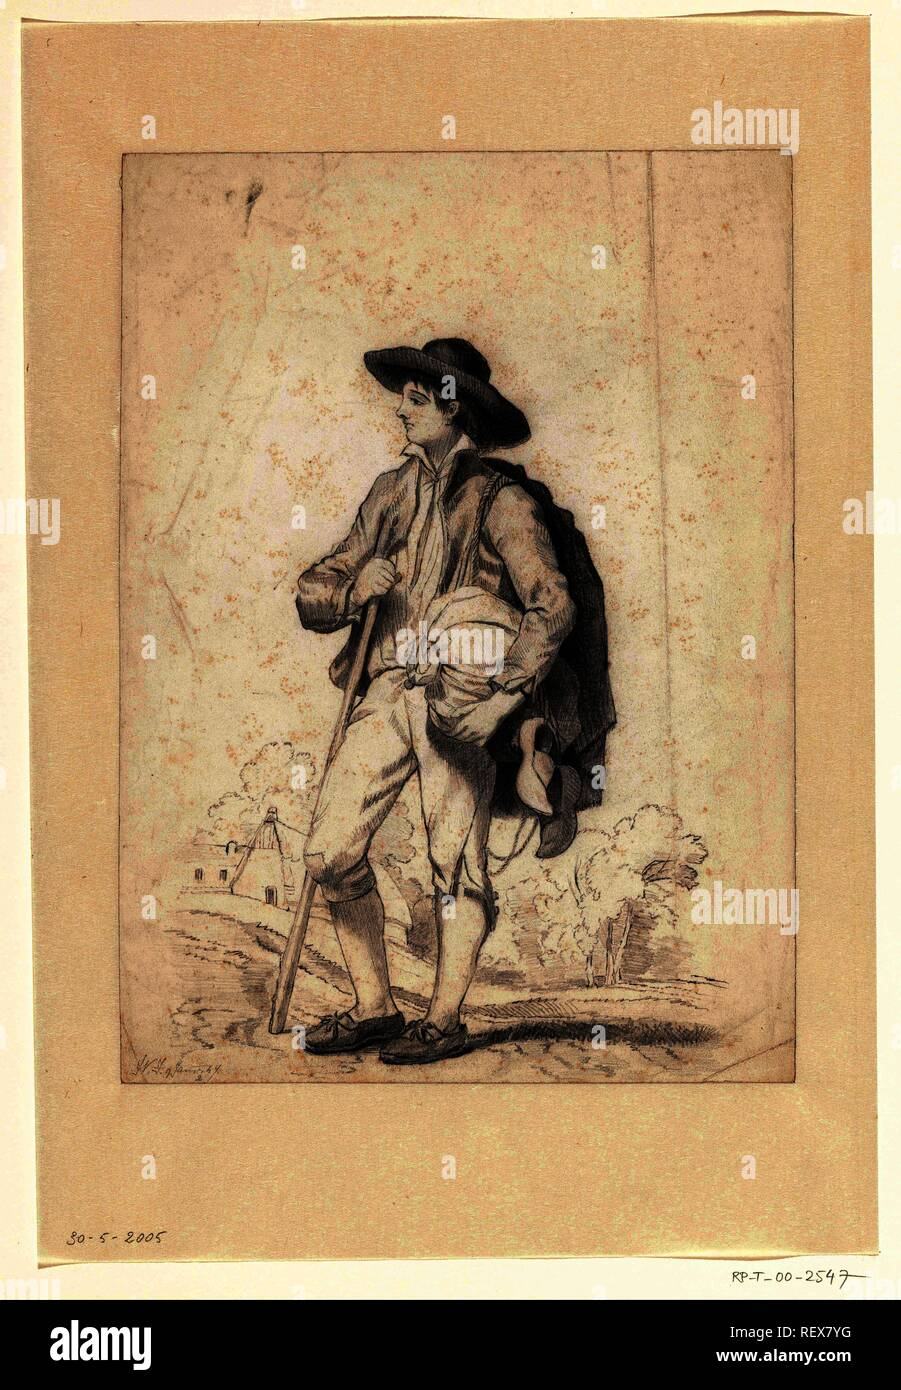 Young traveler. Draughtsman: Monogrammist WJ (possibly). Dating: 9-Jan-1847. Measurements: h 279 mm × w 202 mm. Museum: Rijksmuseum, Amsterdam. - Stock Image